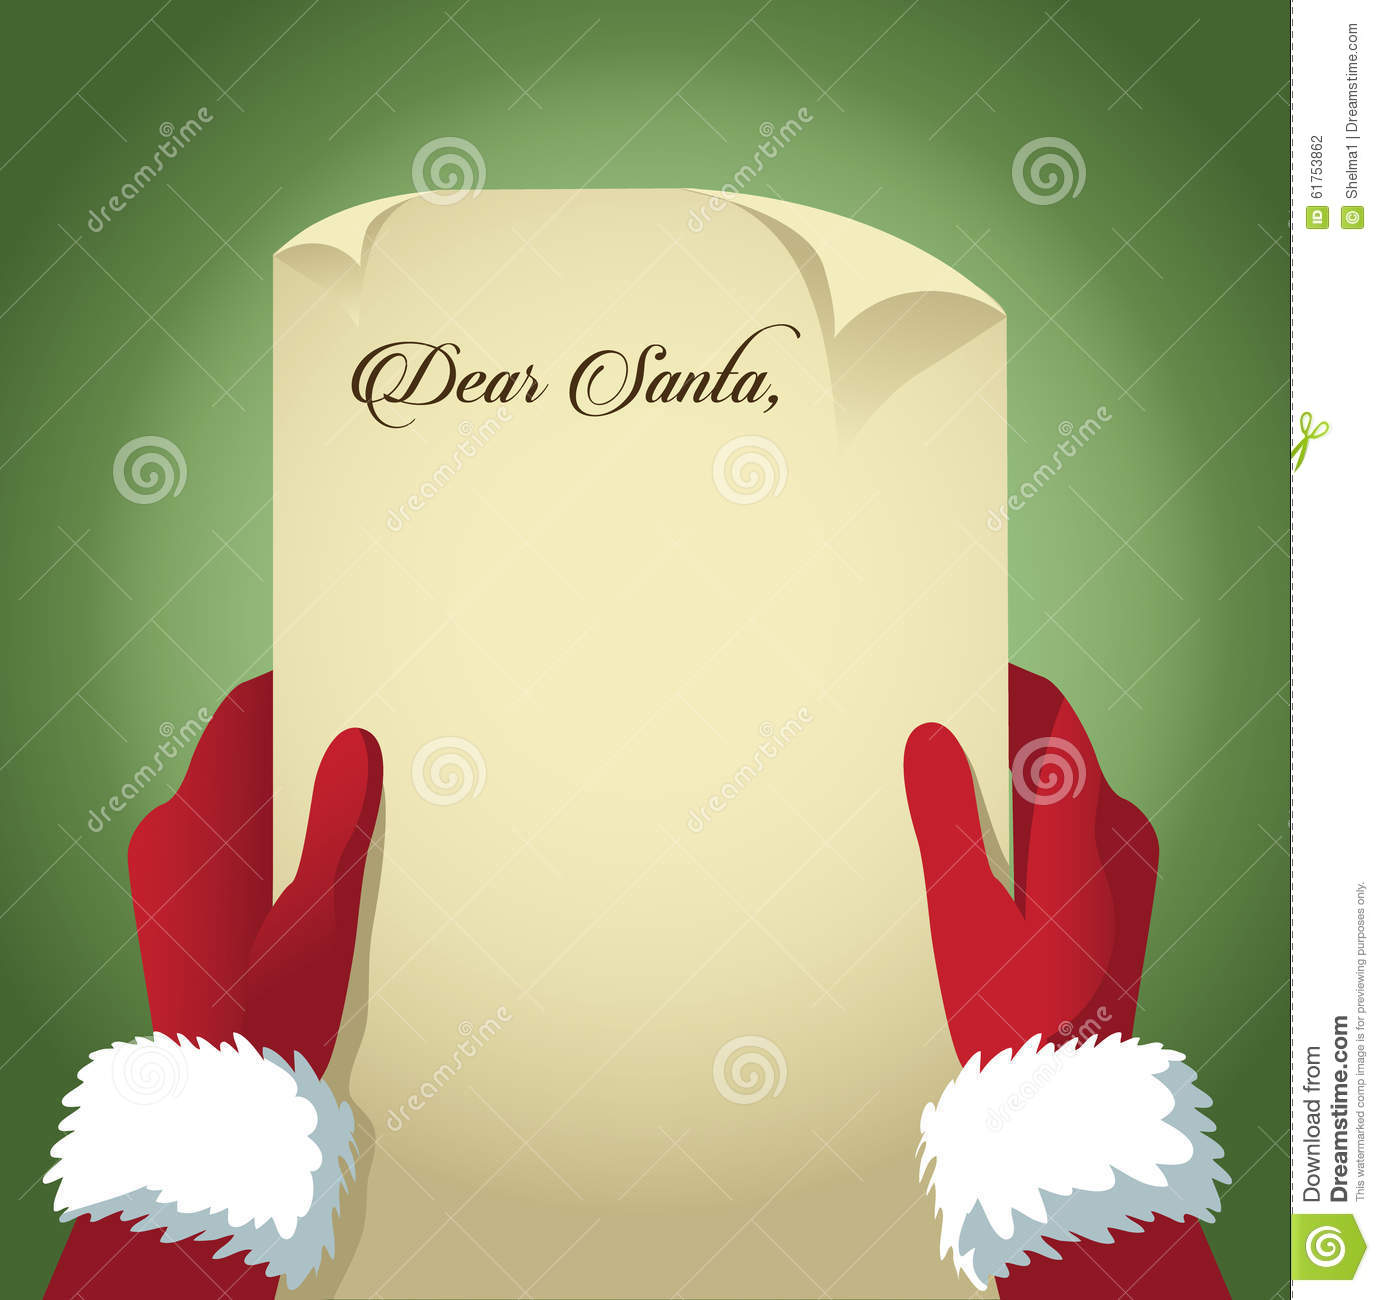 Santa reads a letter from children